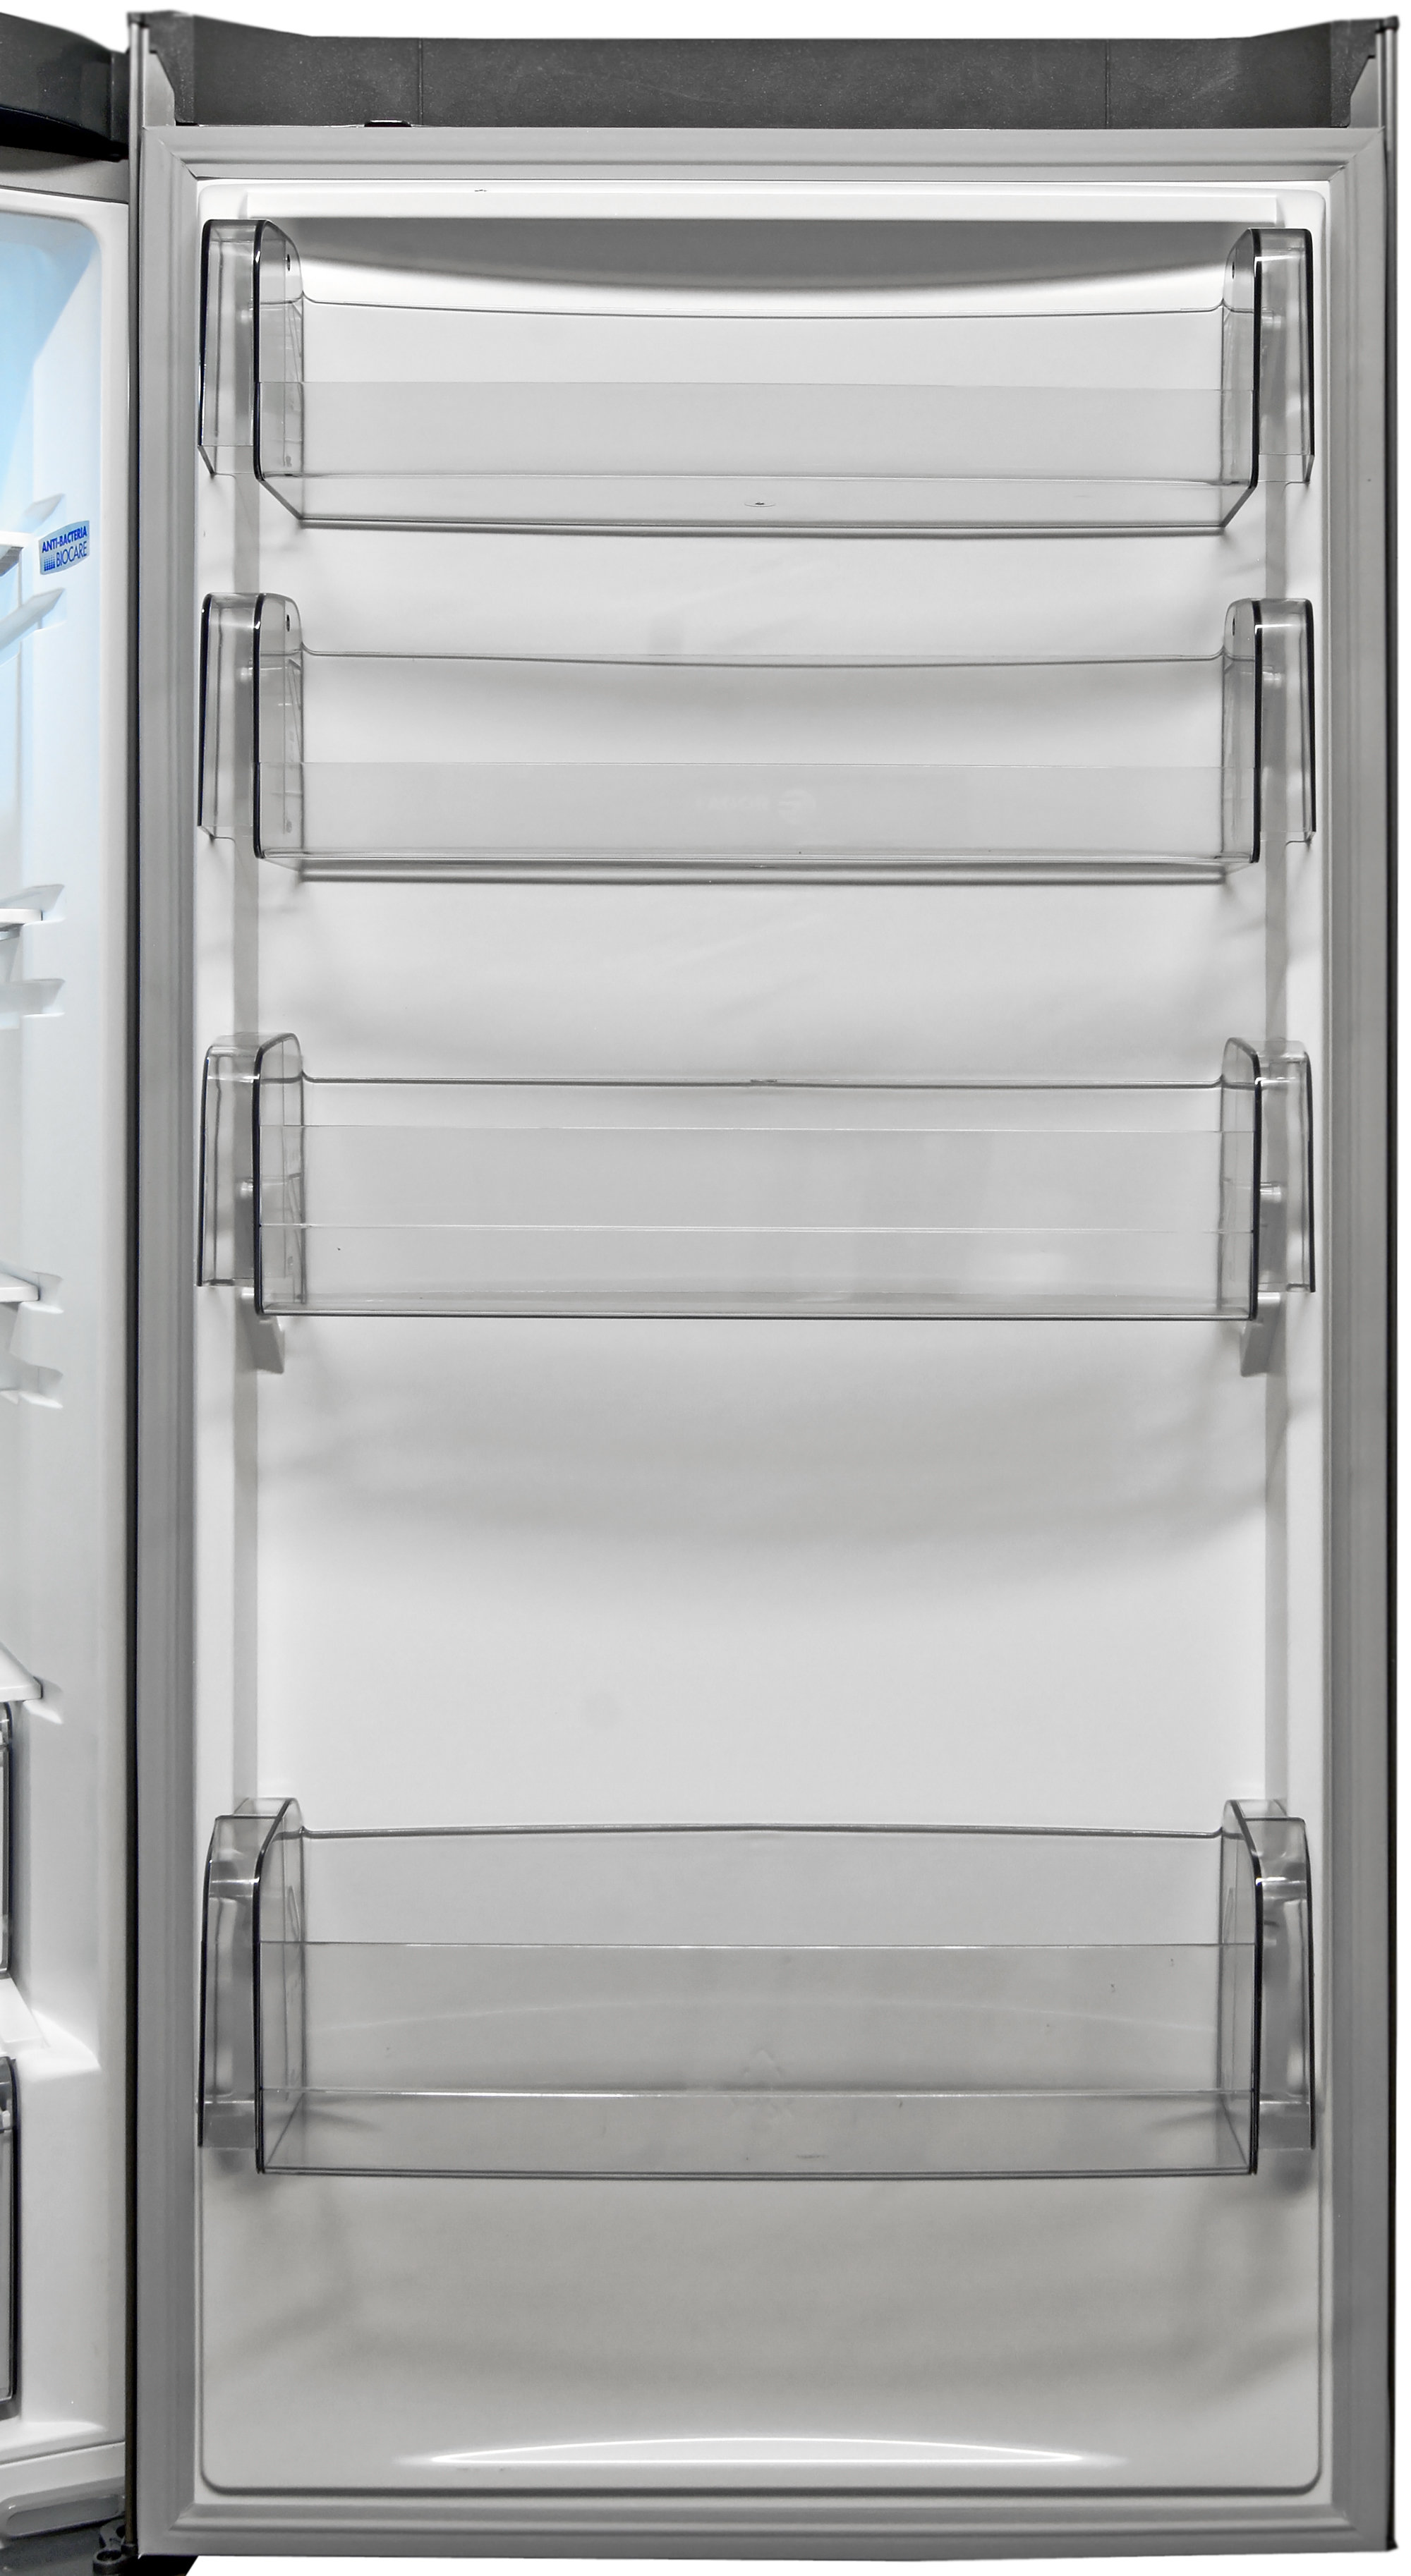 The Fagor FFJA4845X's fridge door has some extra storage space, but not a lot of customizable height options.